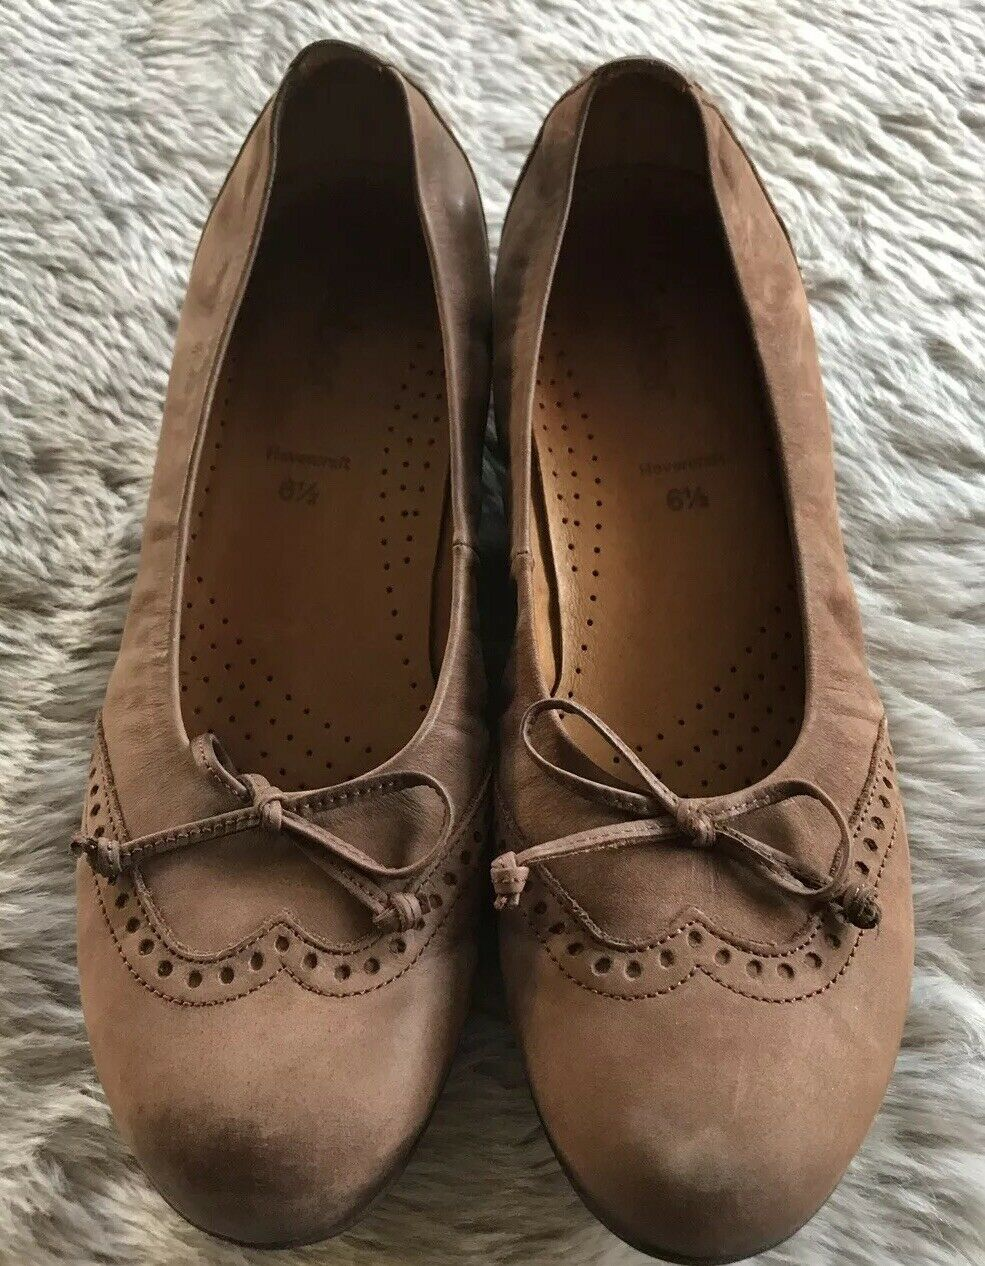 Gabor Hovercraft Brown Leather Wingtip Round Toe Ballet Flats Women's 6.5